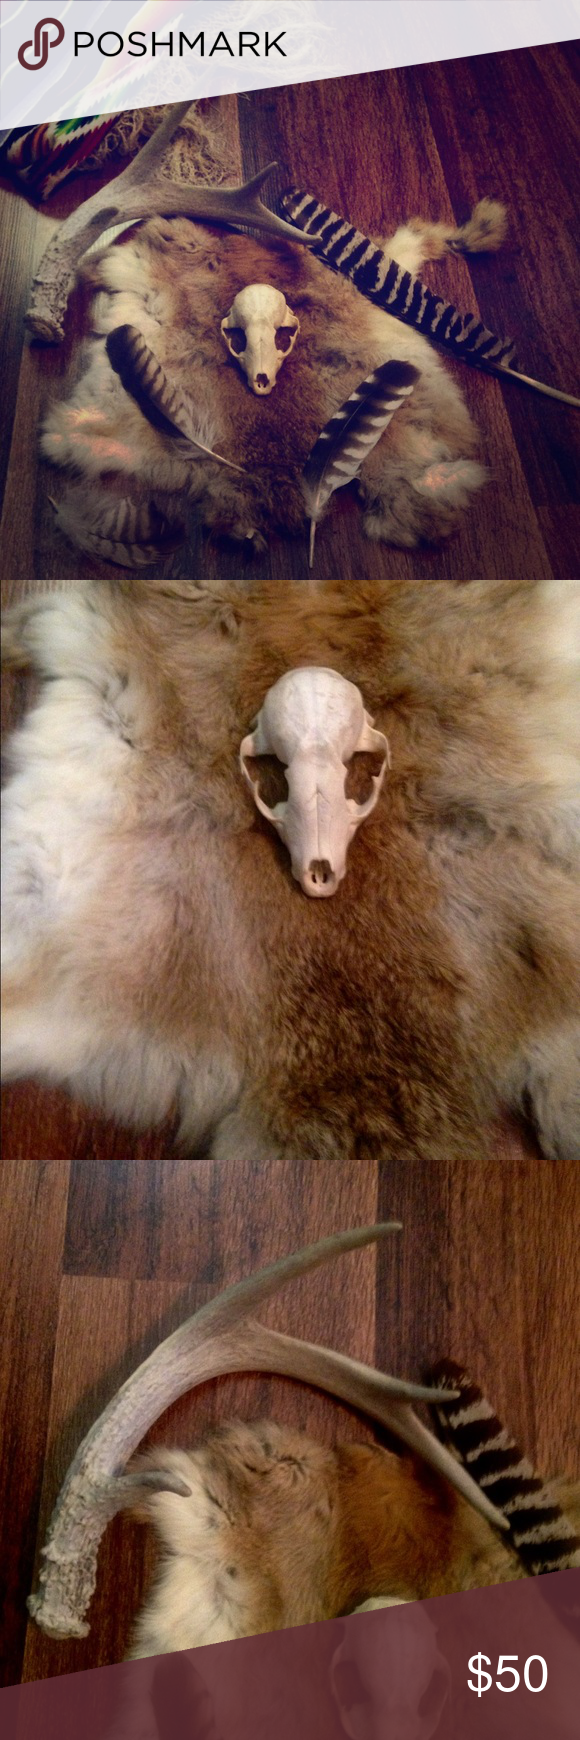 Skull, Rabbit Fur, Feather, Antler Collection All completely Real. 3 Feathers, Rabbit Fur, A Fox skull? Not sure, but looks pretty darn close, ( And told by my Hunter friends), Deer 🦌 Antler. Price Firm. I'm an avid hiker. I have quite a collection. I'll be listing more items soon! Tamara's Adventures  Other